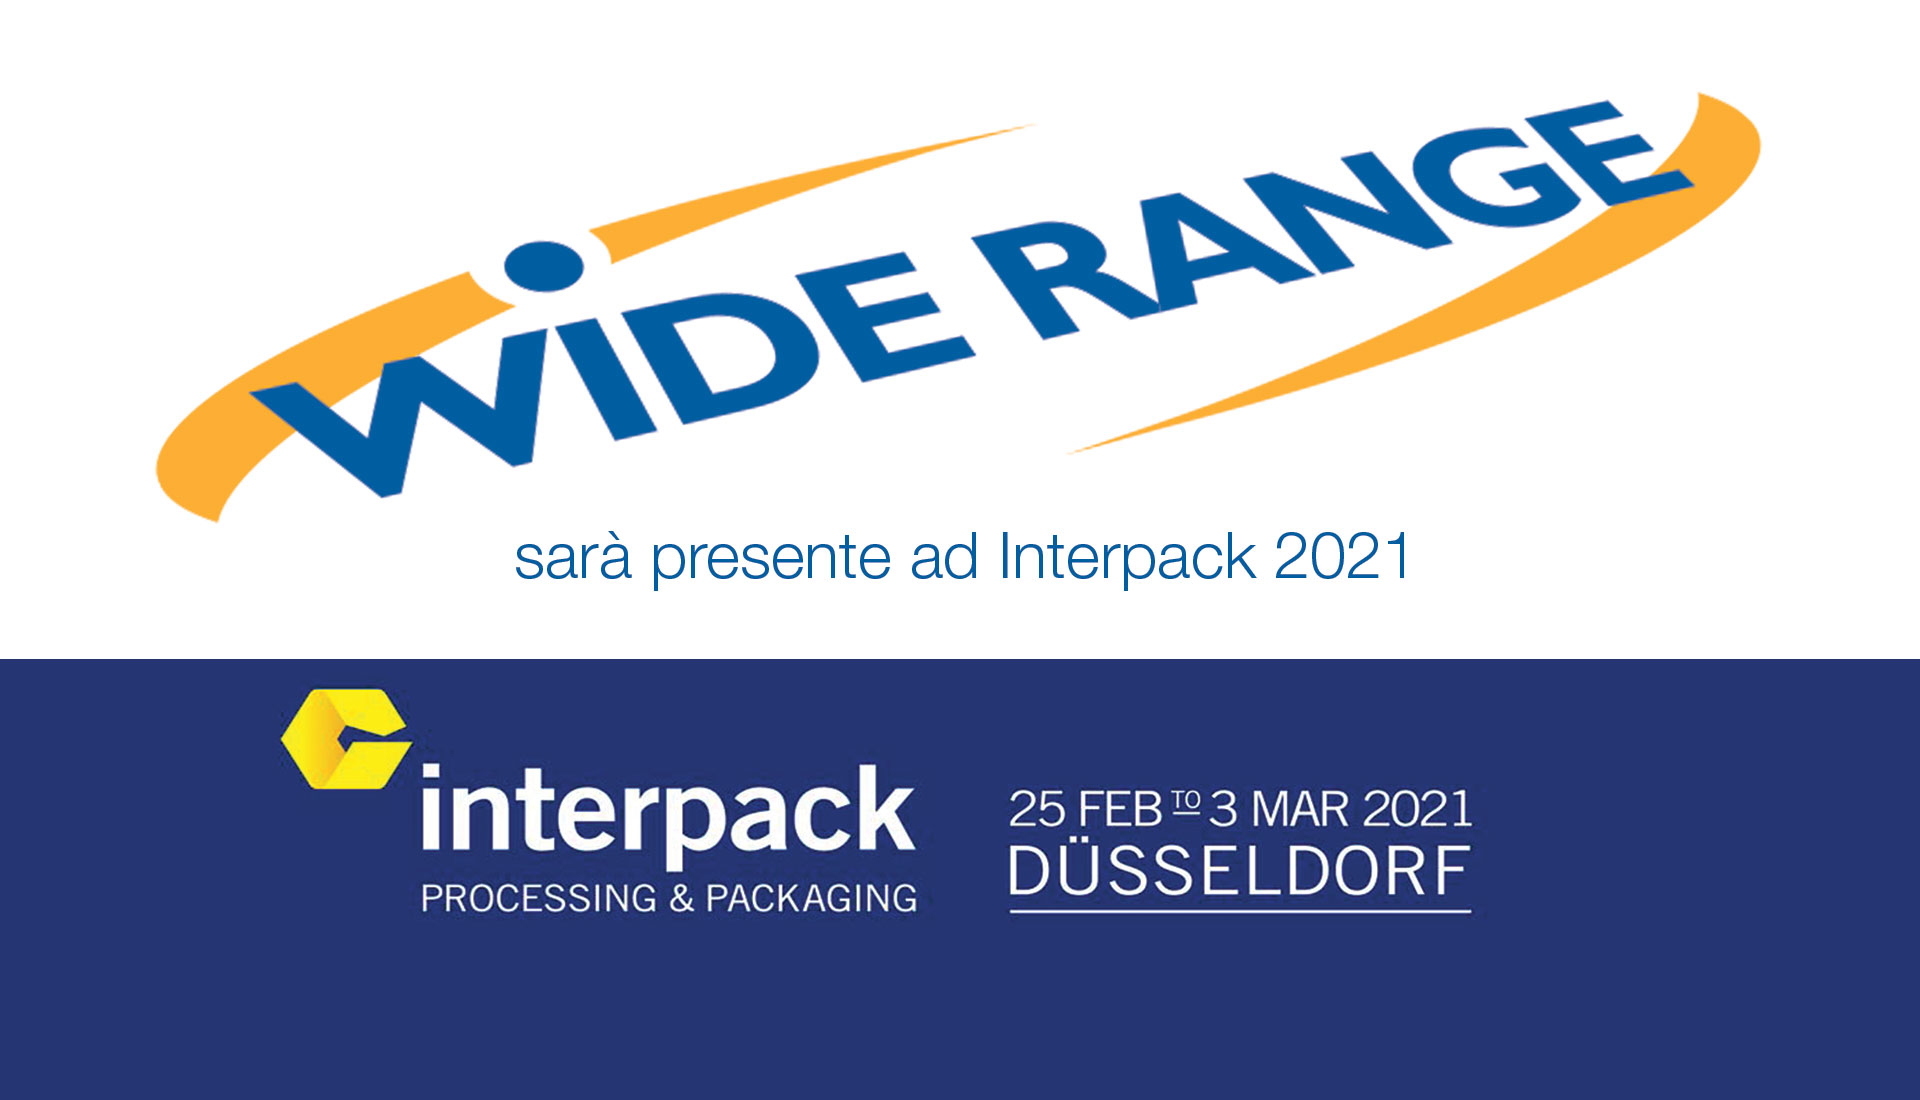 Wide Range sarà presente ad Interpack 2021